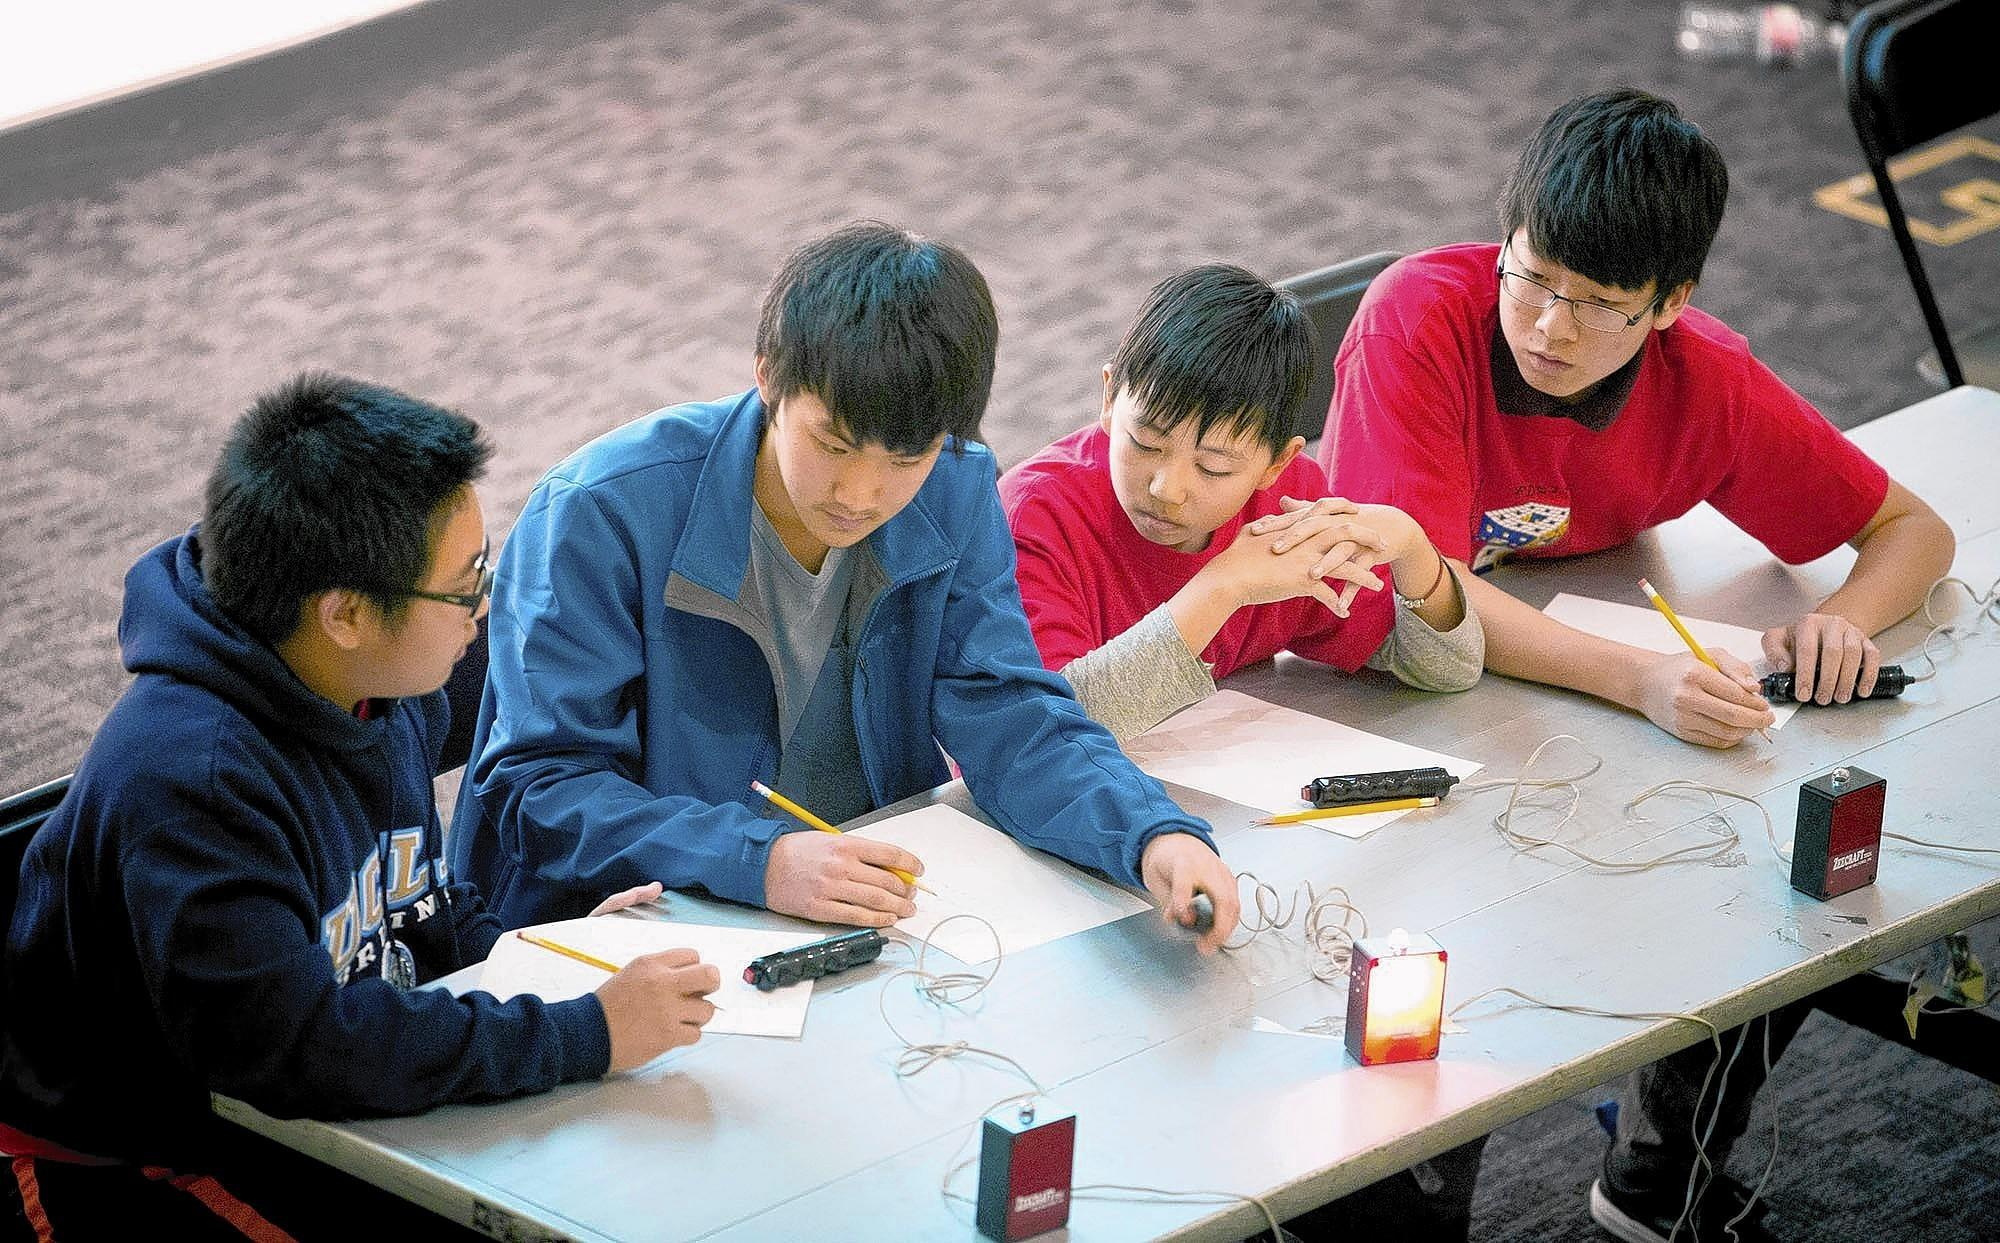 La Cañada High School sophomore William Fu, left, sophomore Colin Um and freshmen Albert Zhai and Daniel Oh work out a problem at the 27th Annual High School Mathematics Competition on Saturday, Feb. 8 at Westmont College in Santa Barbara. The LCHS team dominated the Math Bowl, a team event, for an overall win.